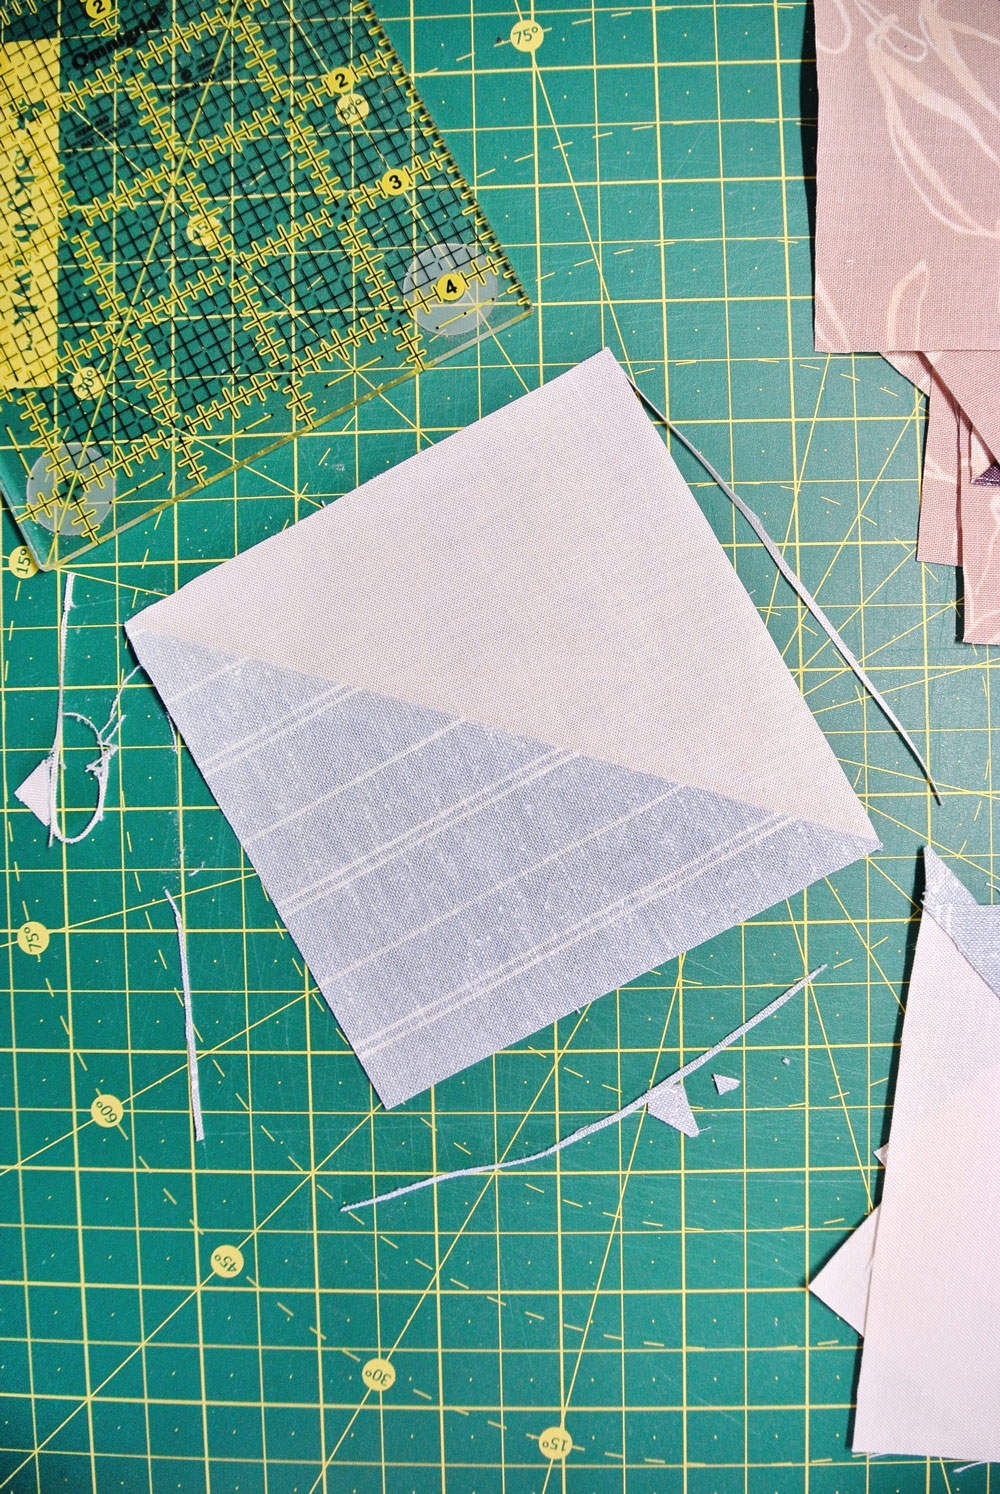 Check out these 3 must-have tools to make the perfect half square triangle. These tools and tricks are simple, inexpensive and easy to use. | Suzy Quilts https://suzyquilts.com/3-tools-to-make-the-perfect-half-square-triangle